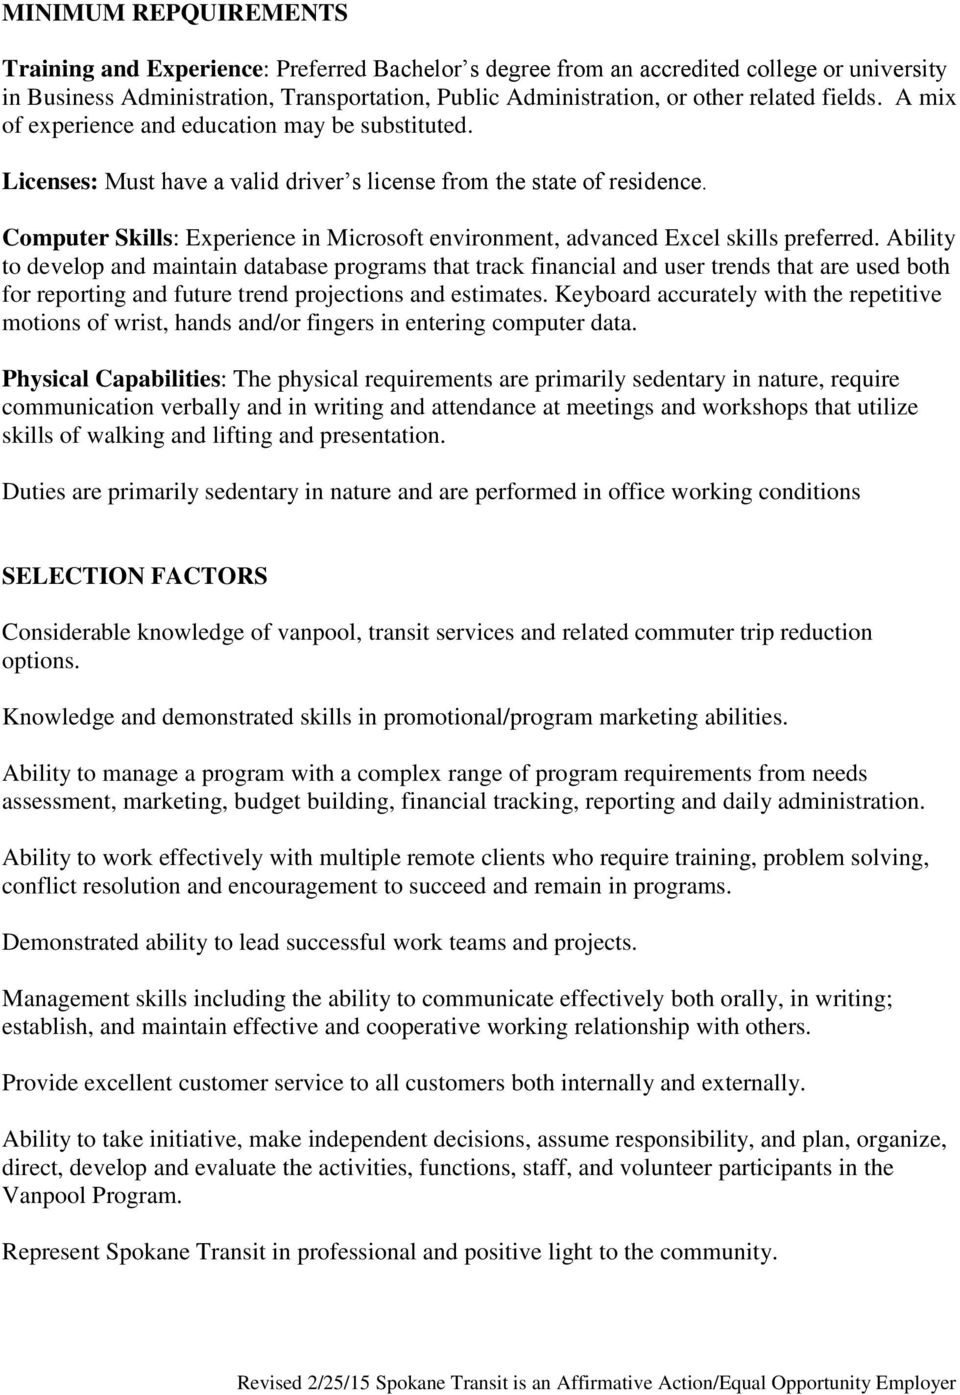 Computer Skills: Experience in Microsoft environment, advanced Excel skills preferred.